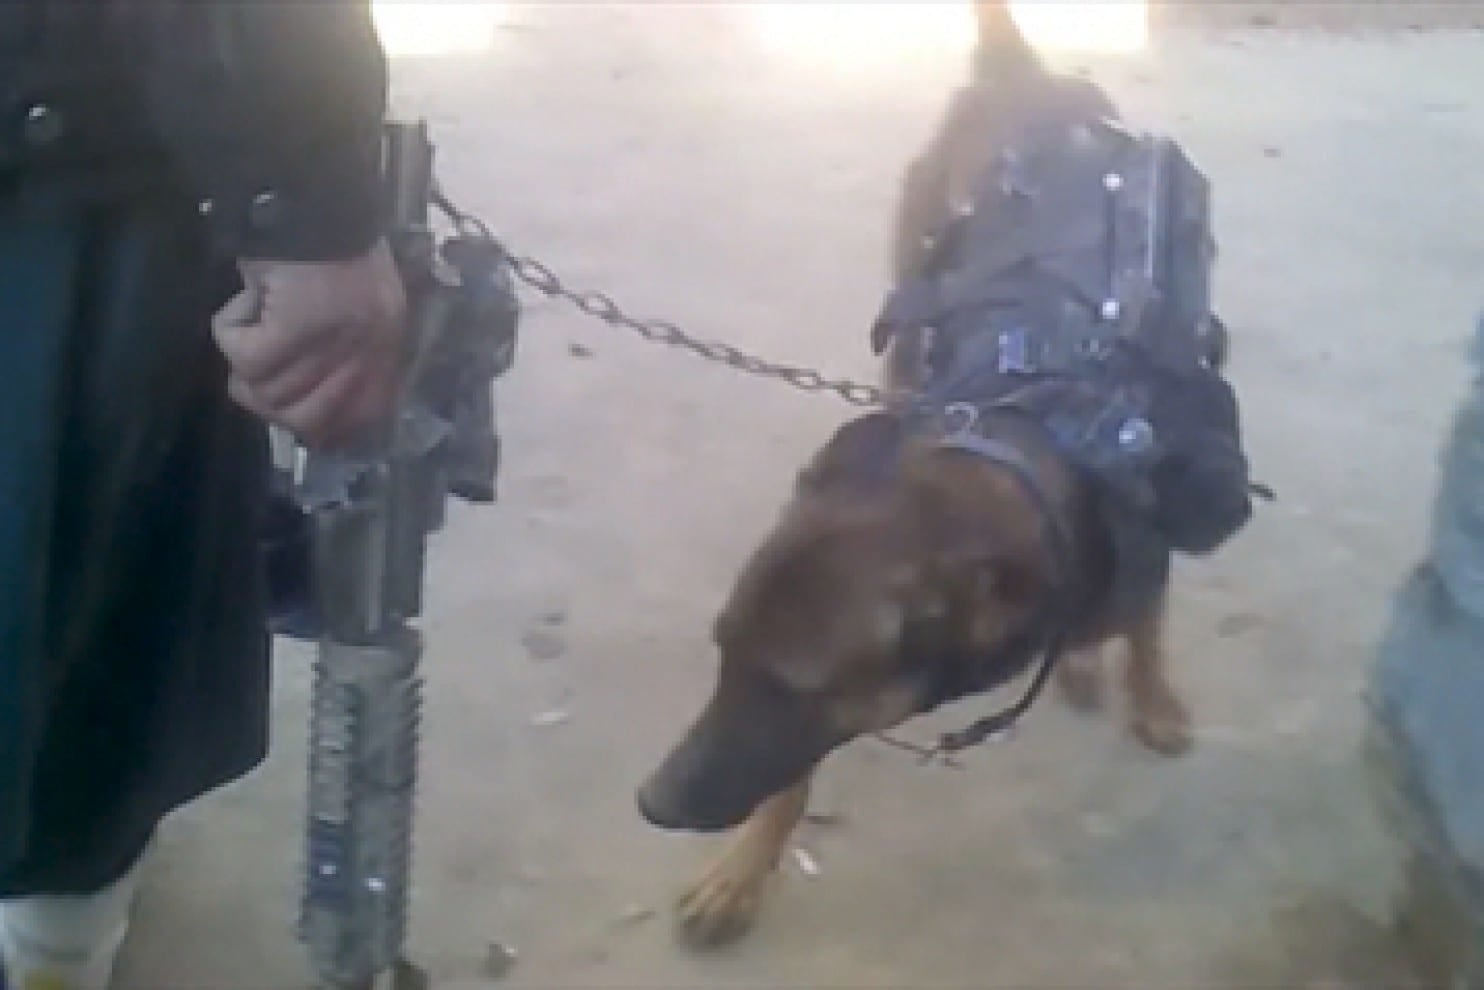 This canine prisoner of war is still held by Taliban captors